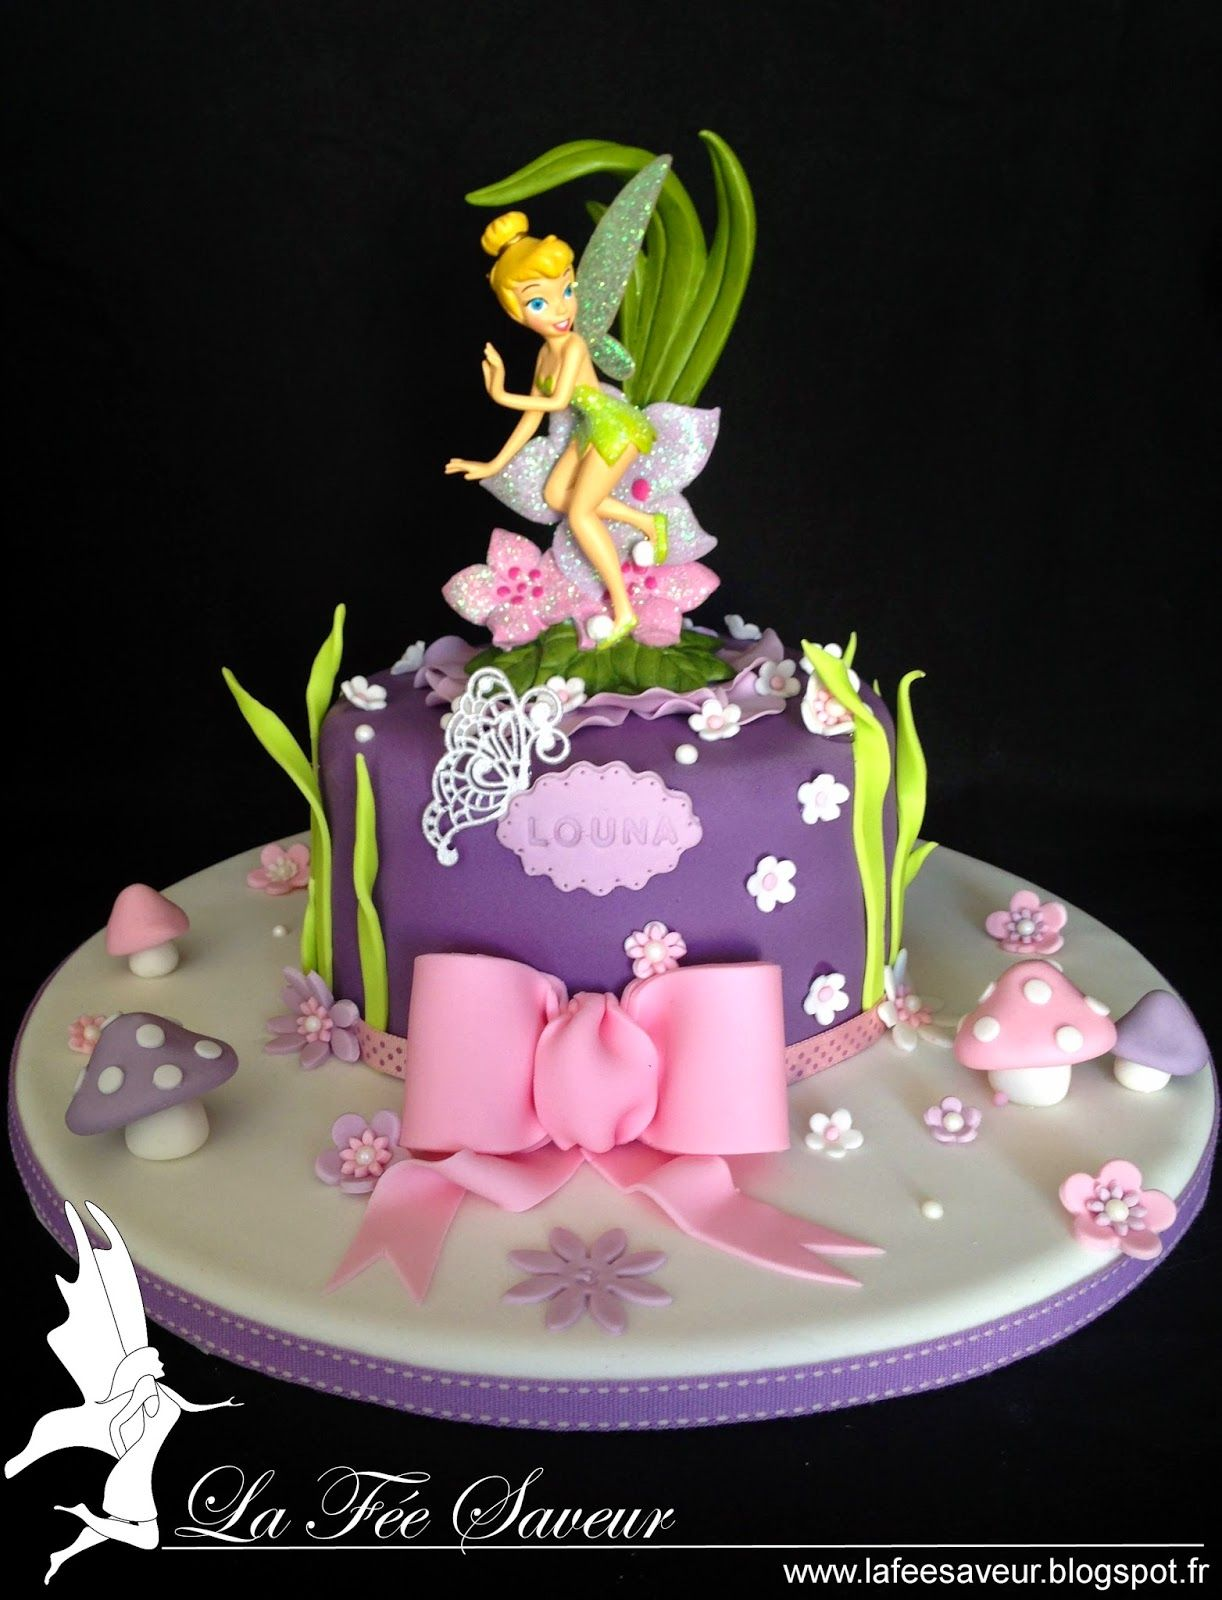 Decoration Fee Clochette Pour Gateau : Decoration gateau fee clochette